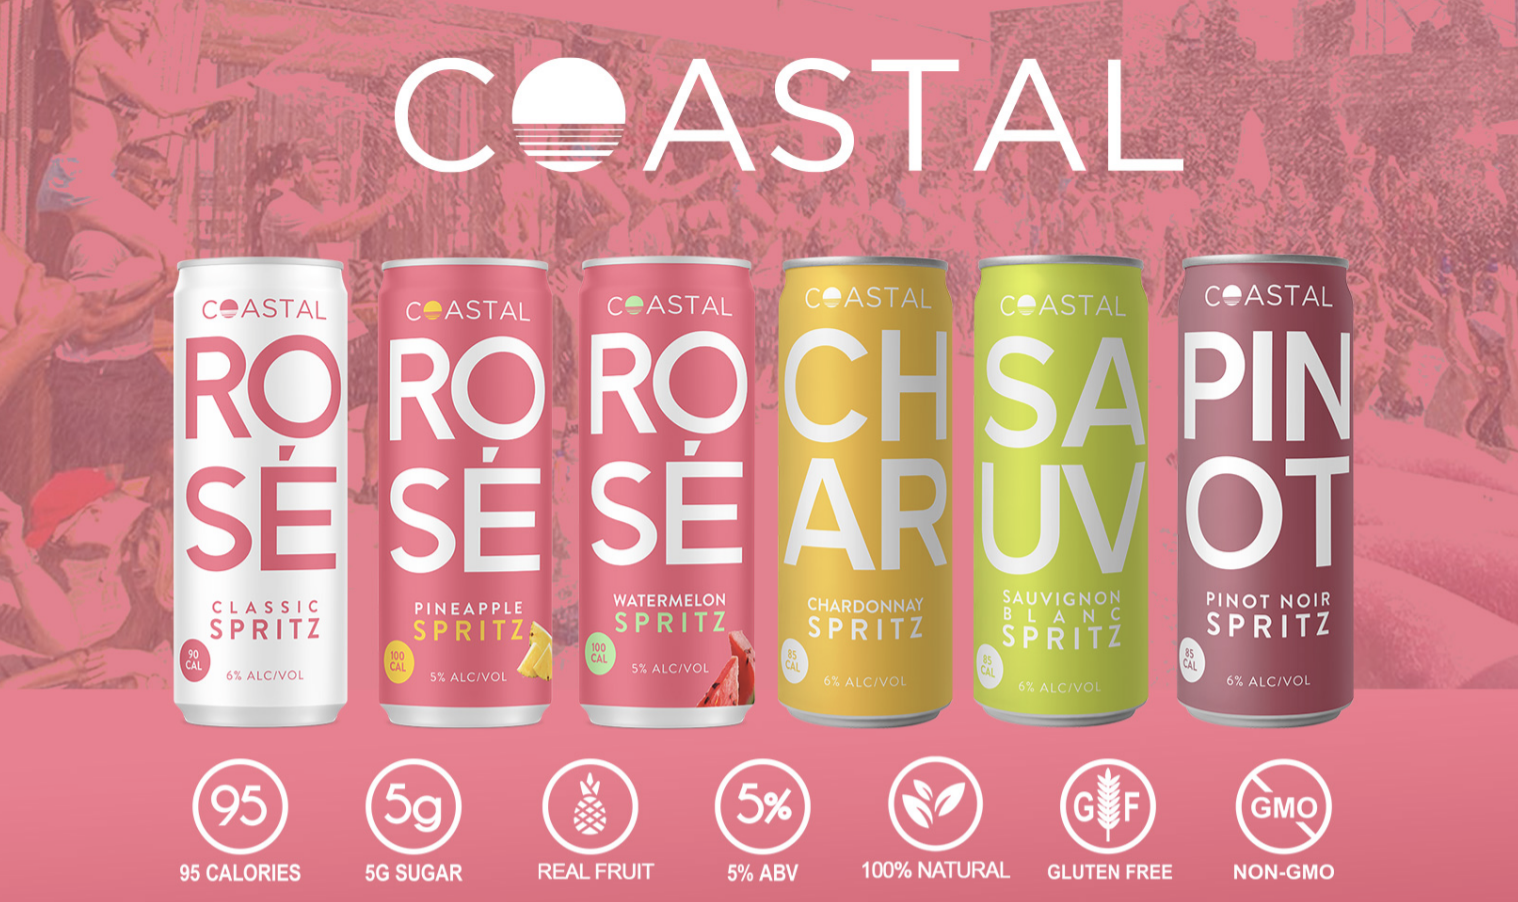 COASTAL SPRITZ PREMIUM LIGHT CANNED WINE CONTINUES TO BE CATEGORY LEADER AS THE BRAND CONTINUES ITS NATIONWIDE EXPANSION